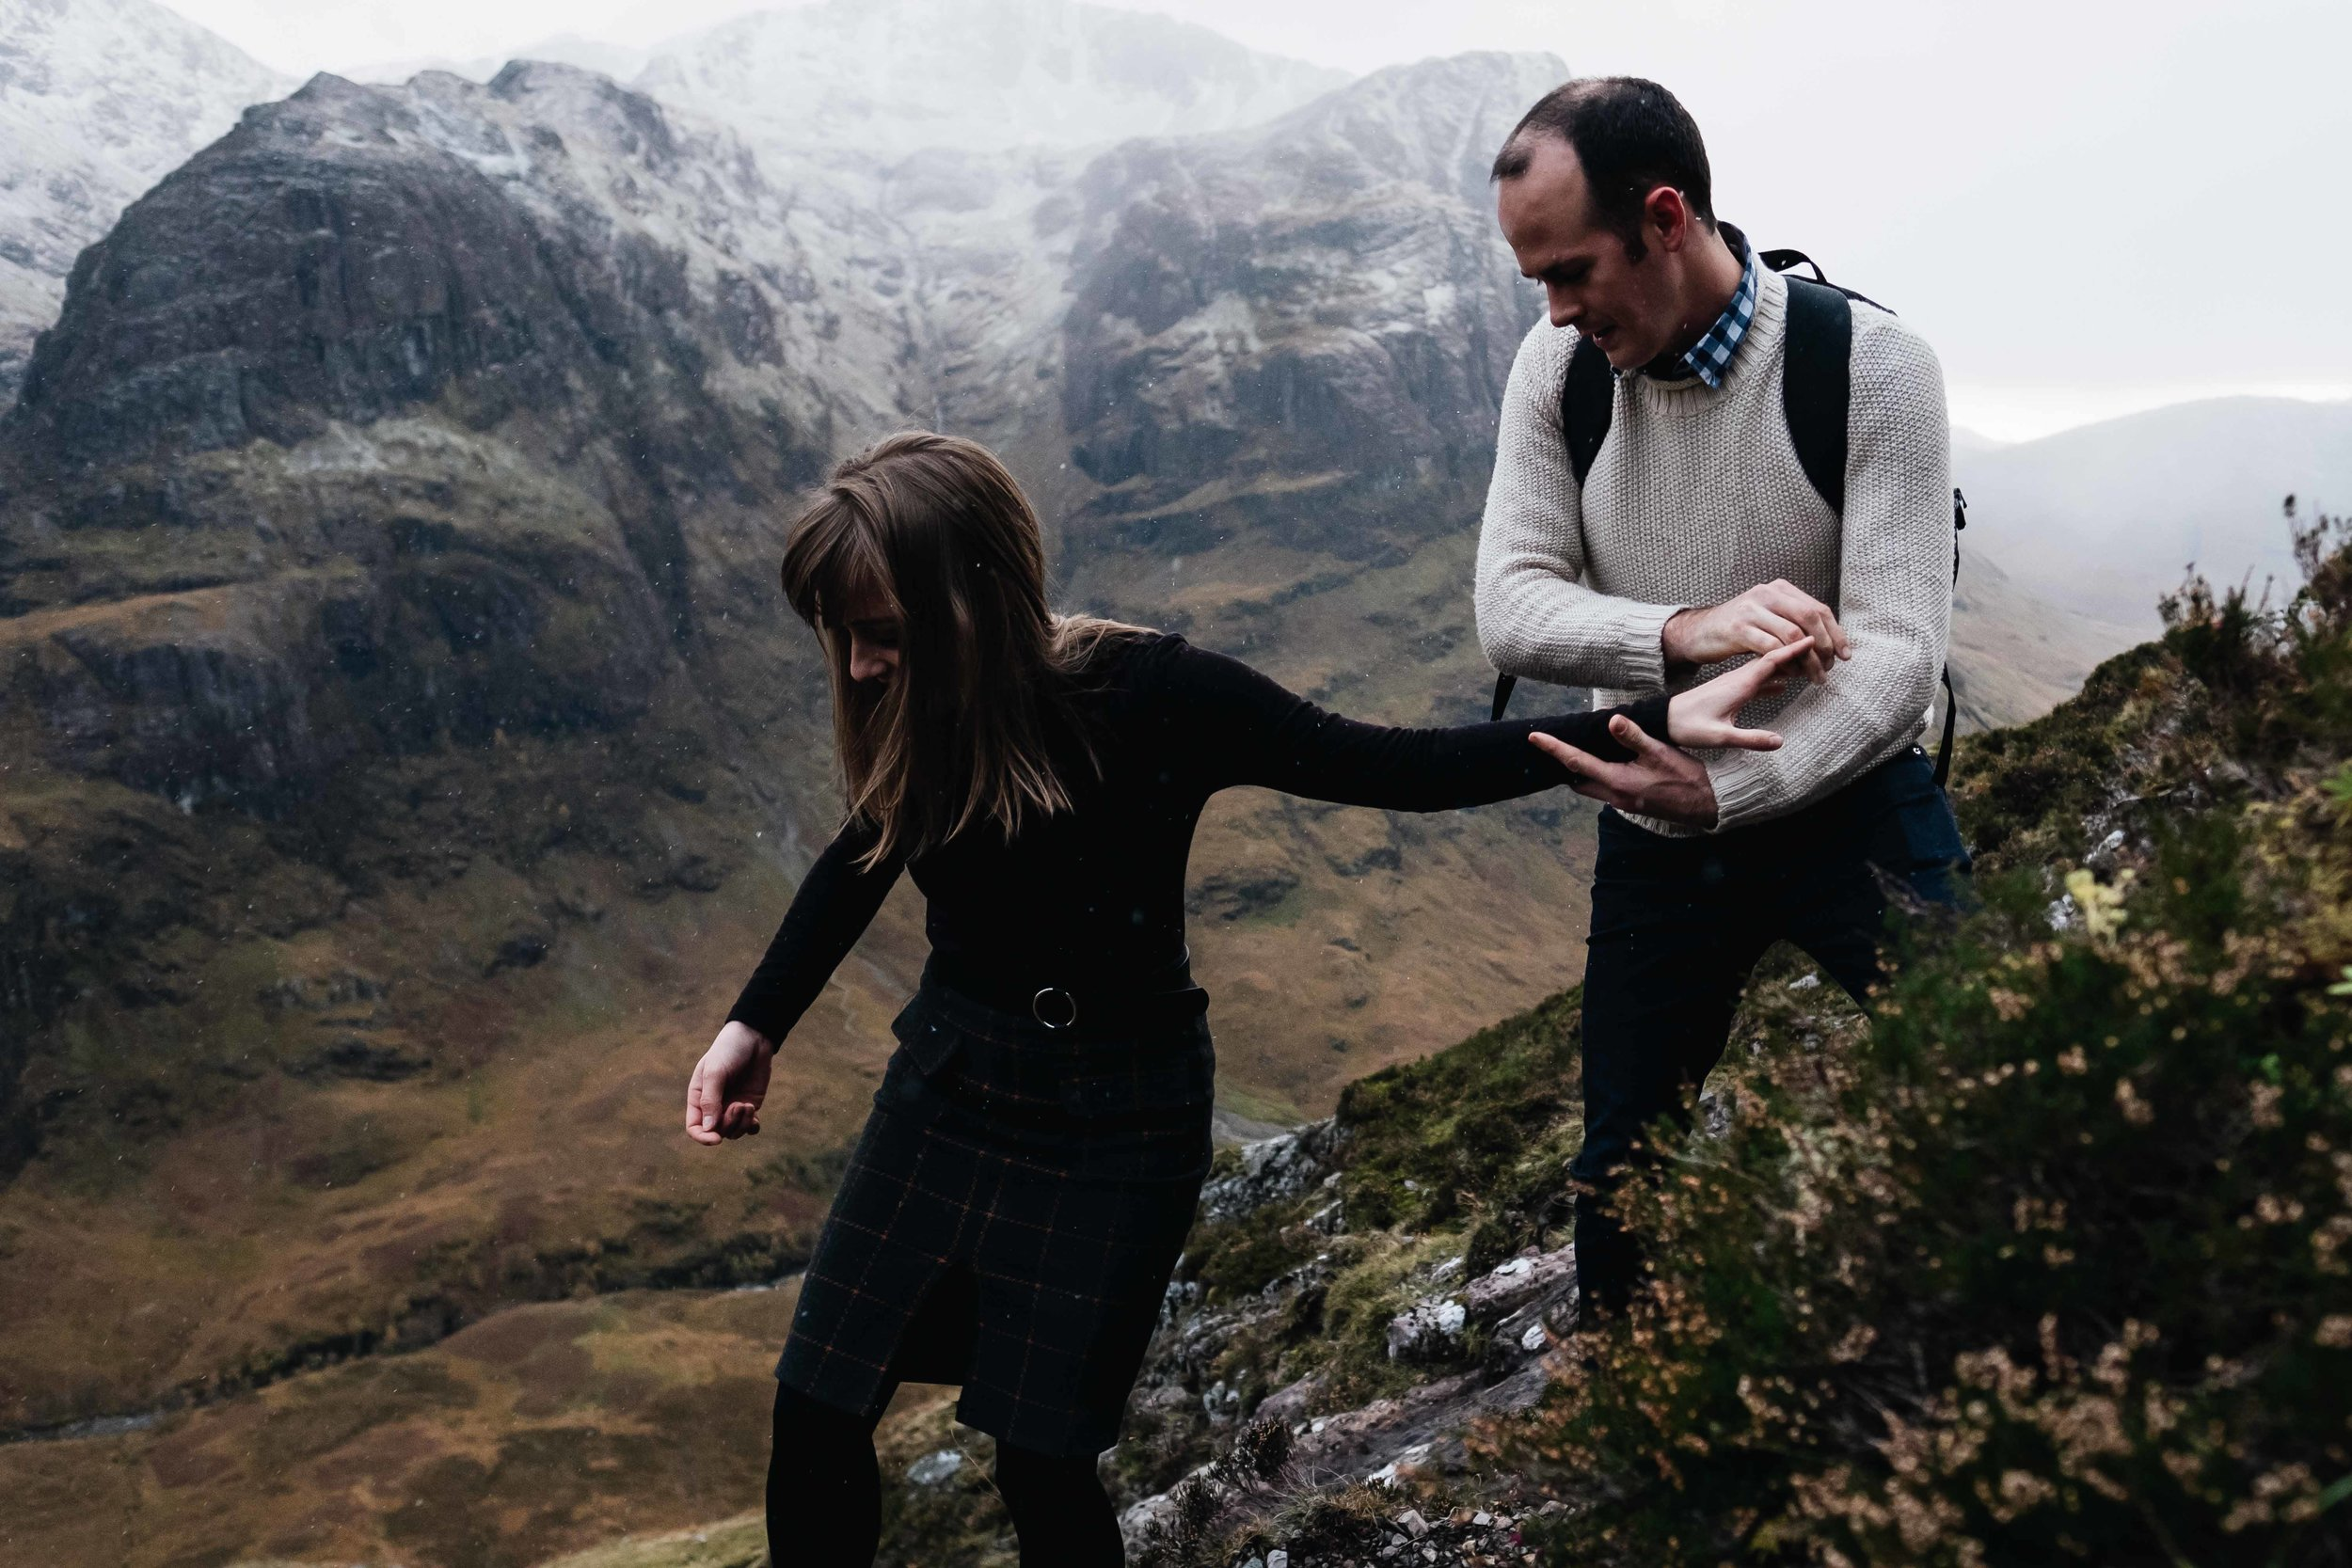 Couple climbing in Glencoe area